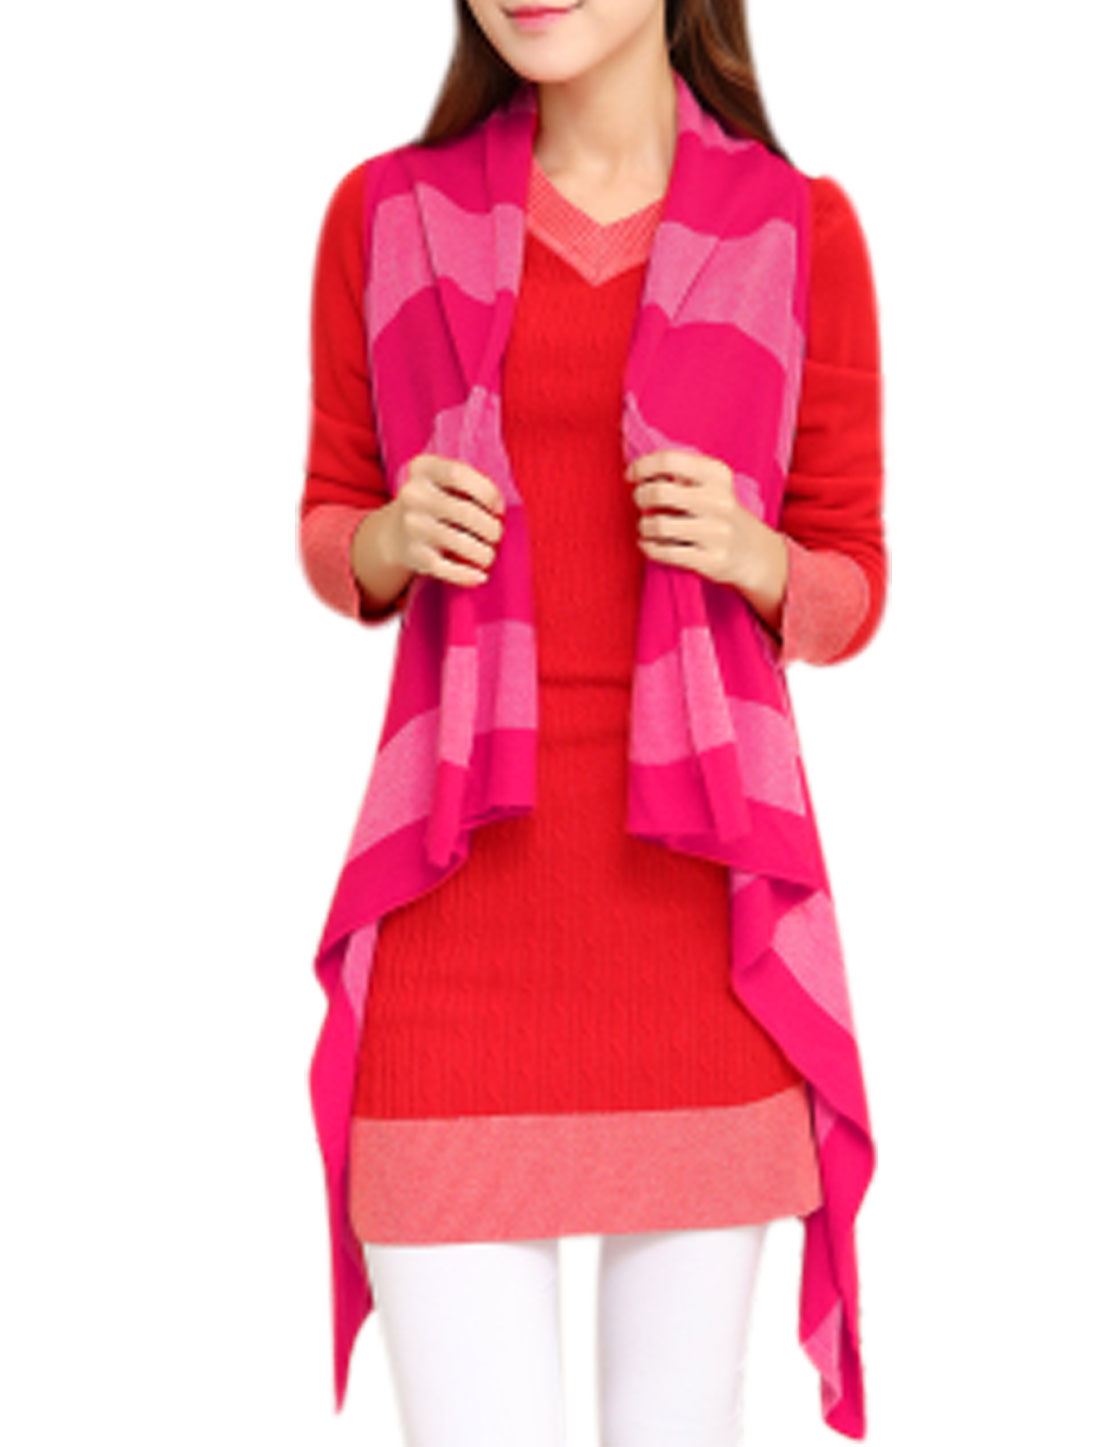 Ladies Shawl Collar Stripes Irregular Hem Fuchsia Knitting Vest XS